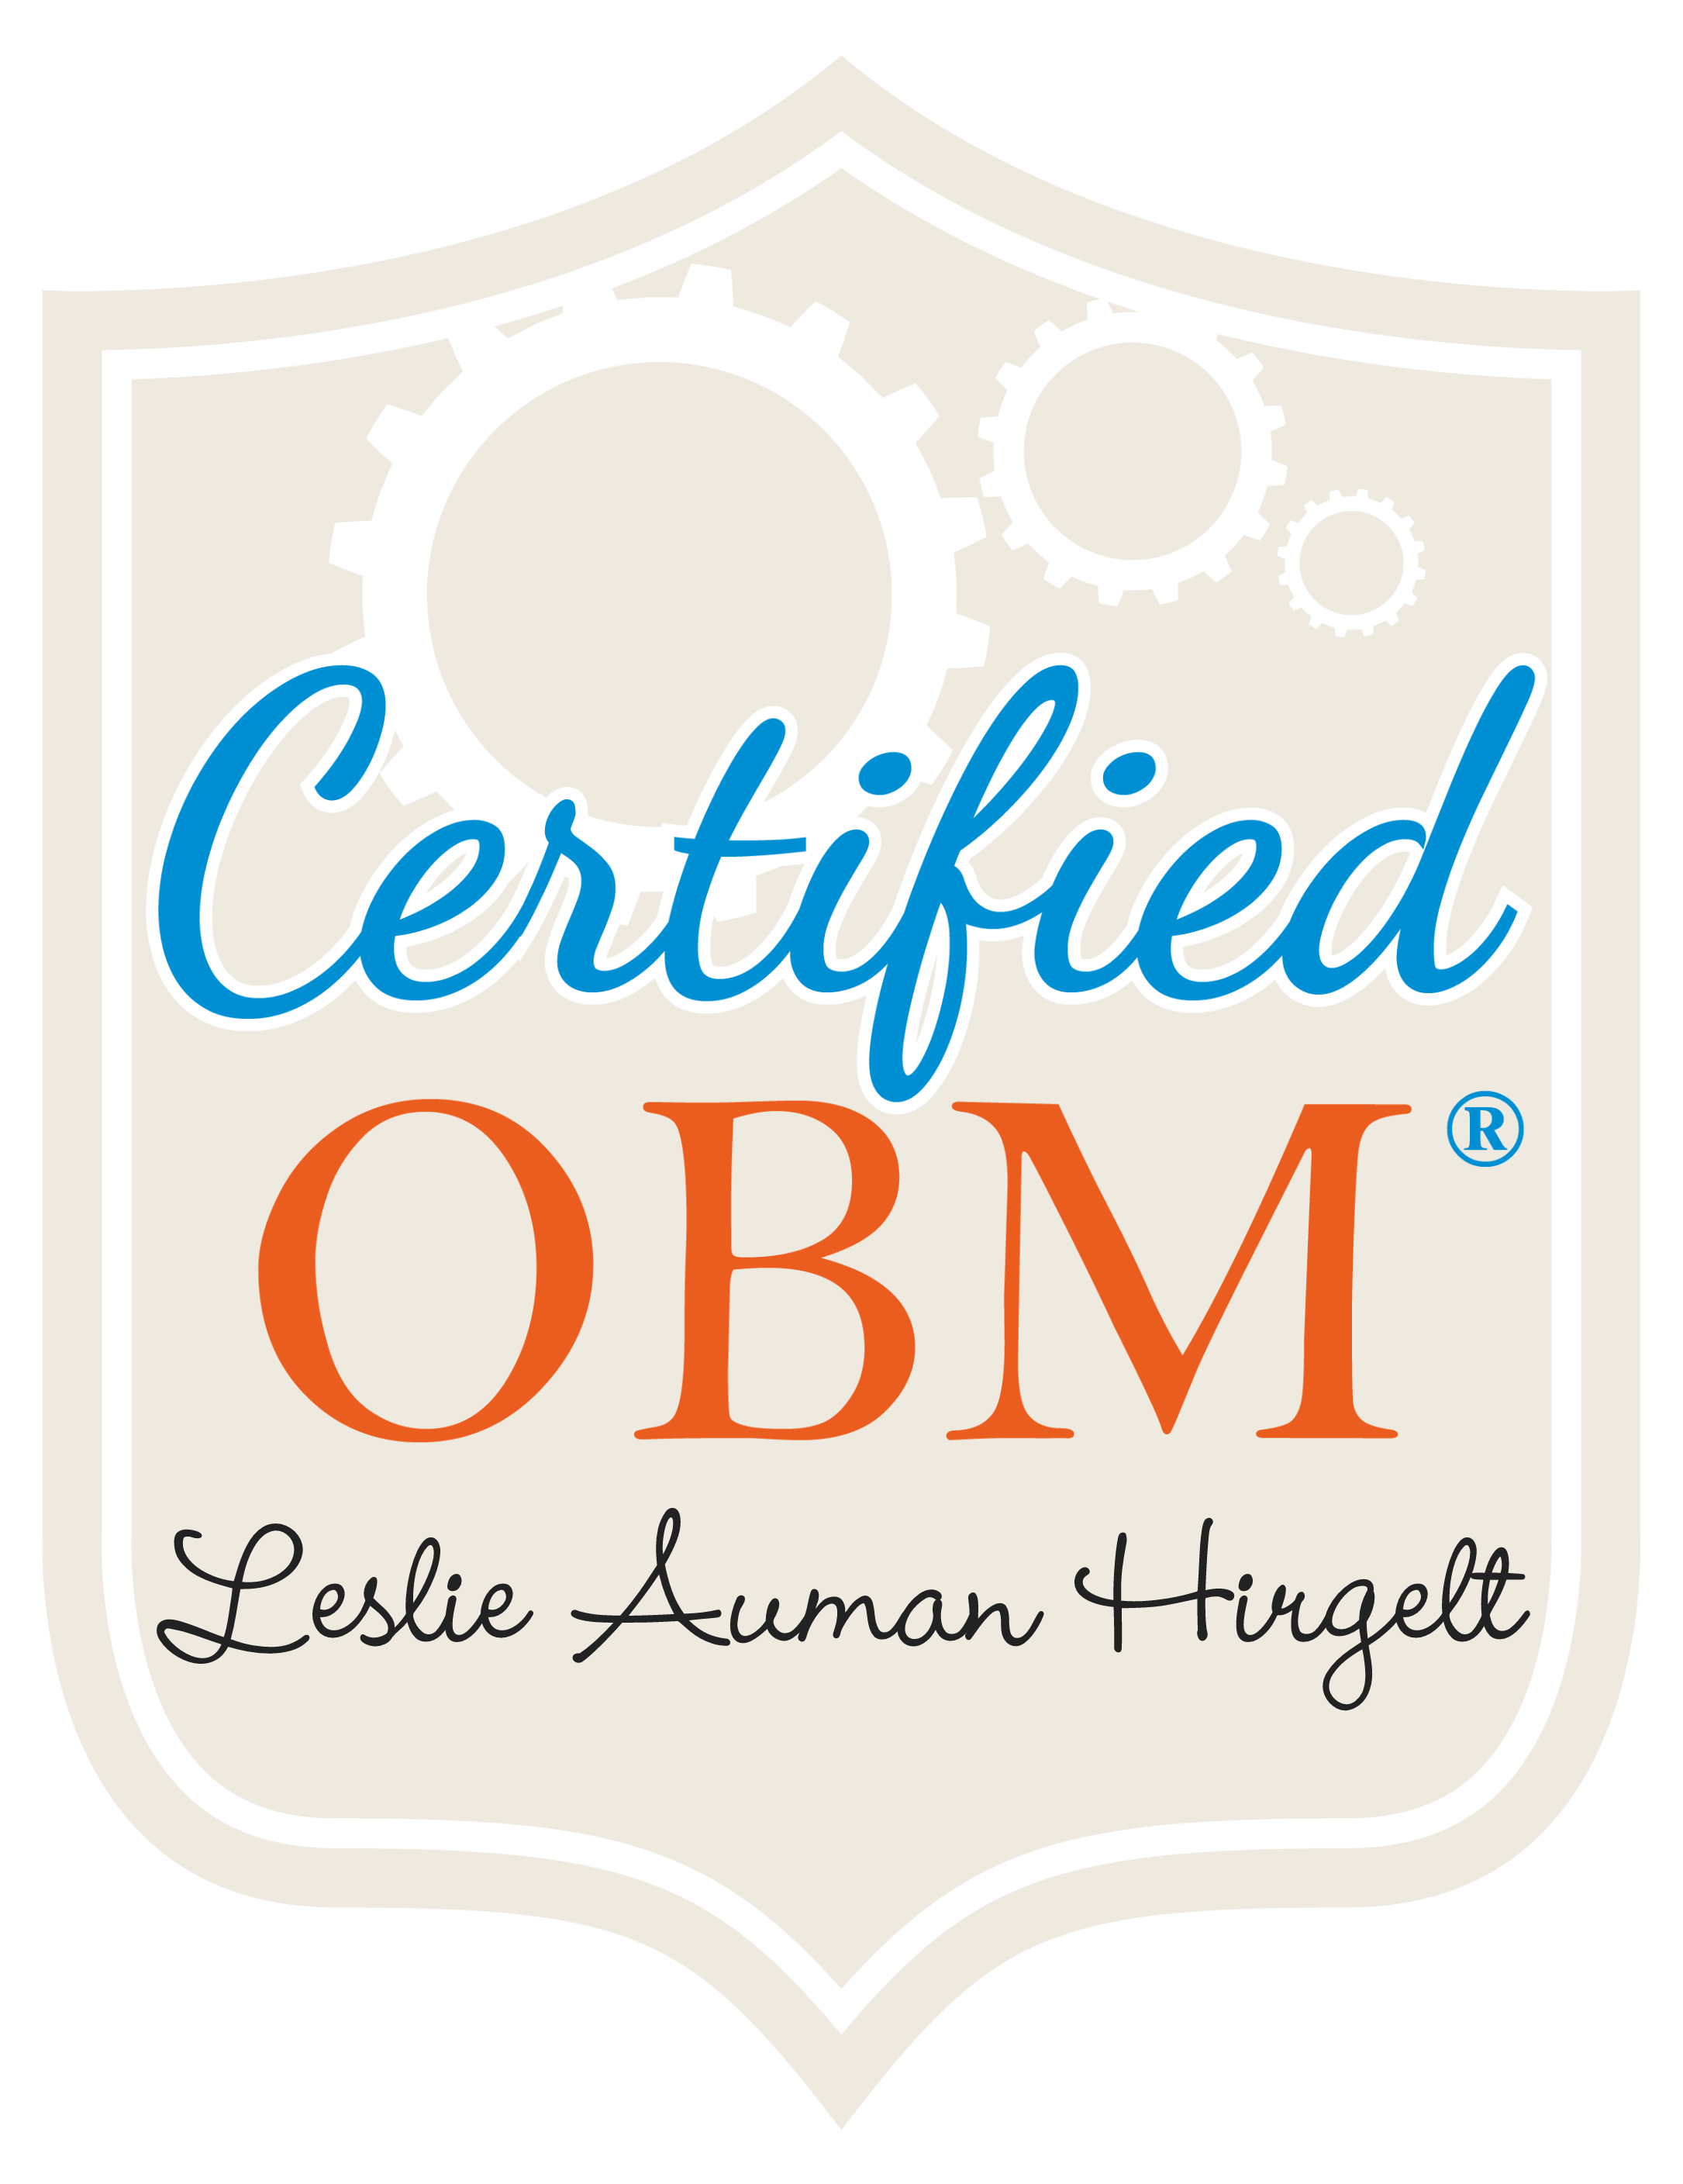 This is a graphic displaying a badge for Leslie Auman Hirgelt's OBM certification.